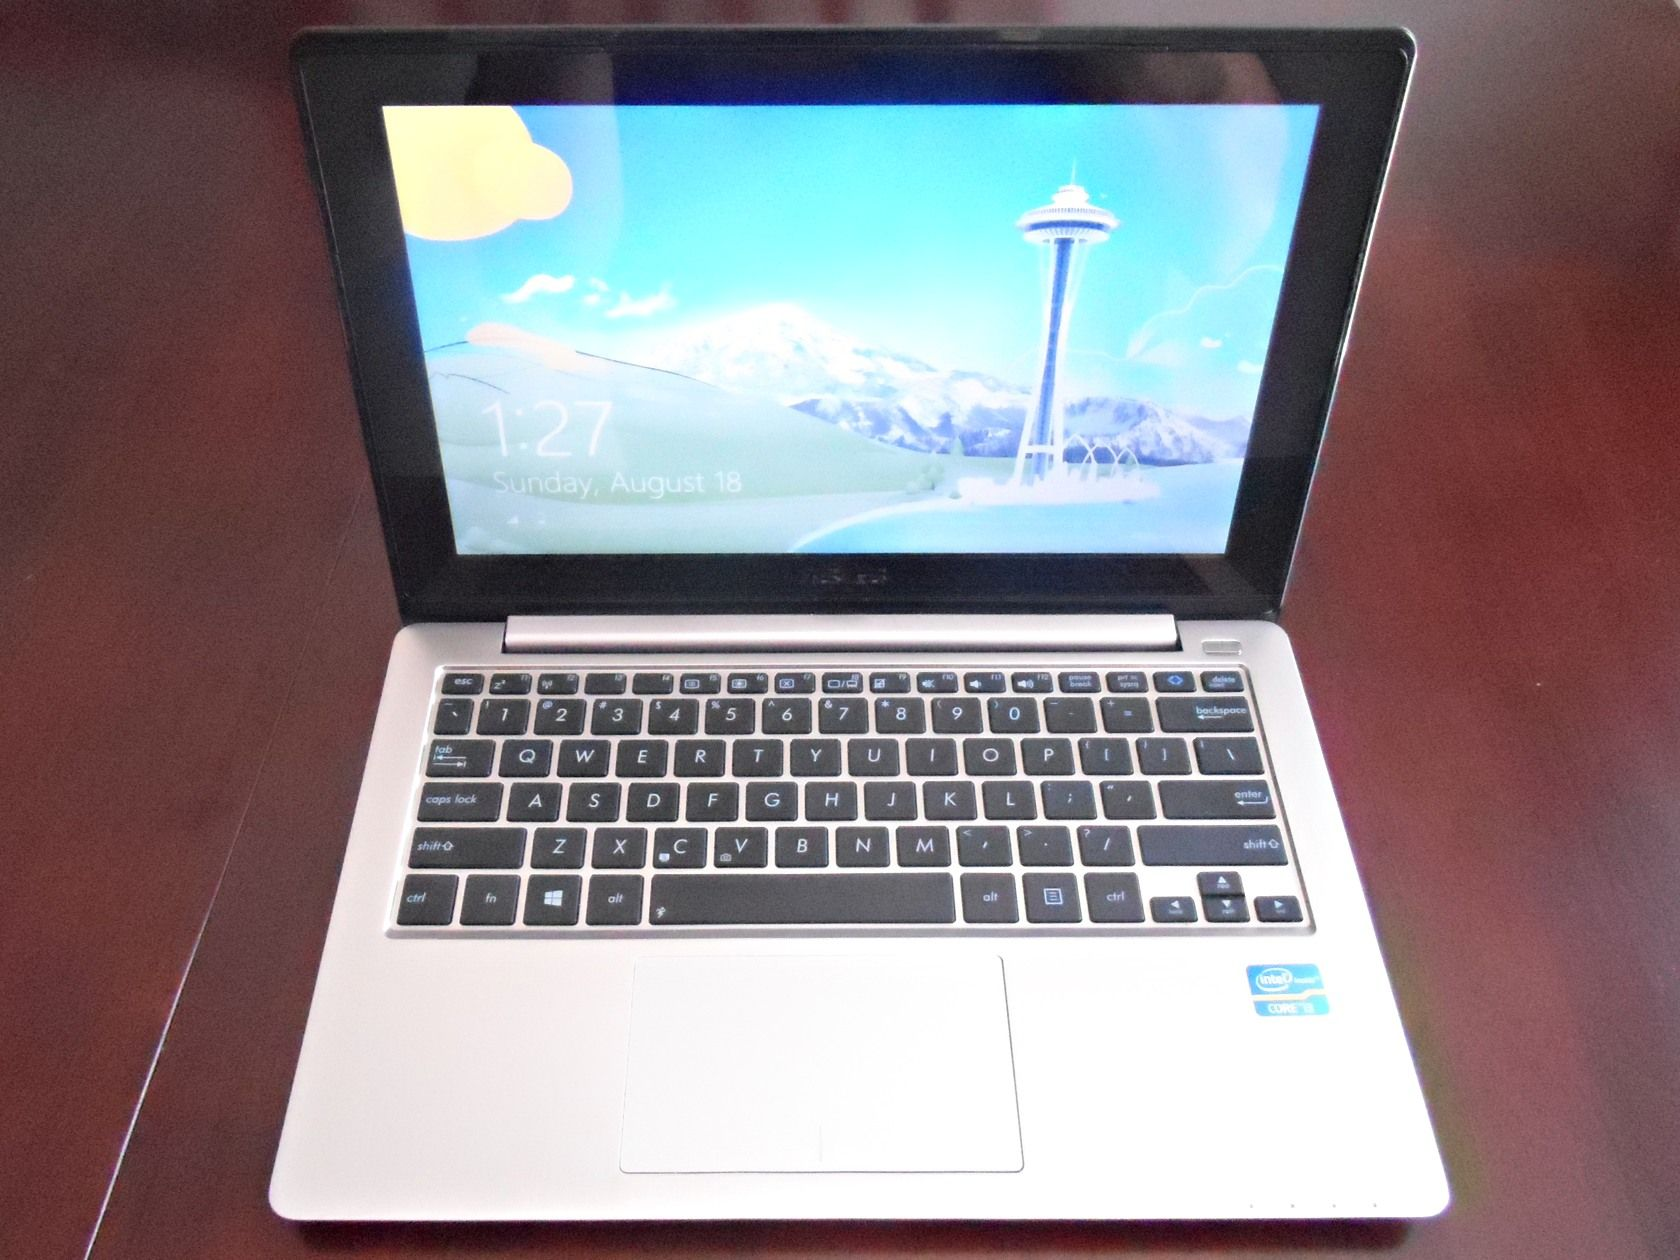 Asus Vivobook X202e Windows 8 Touchscreen Laptop Review And Giveaway Laptop Asus Touch Screen